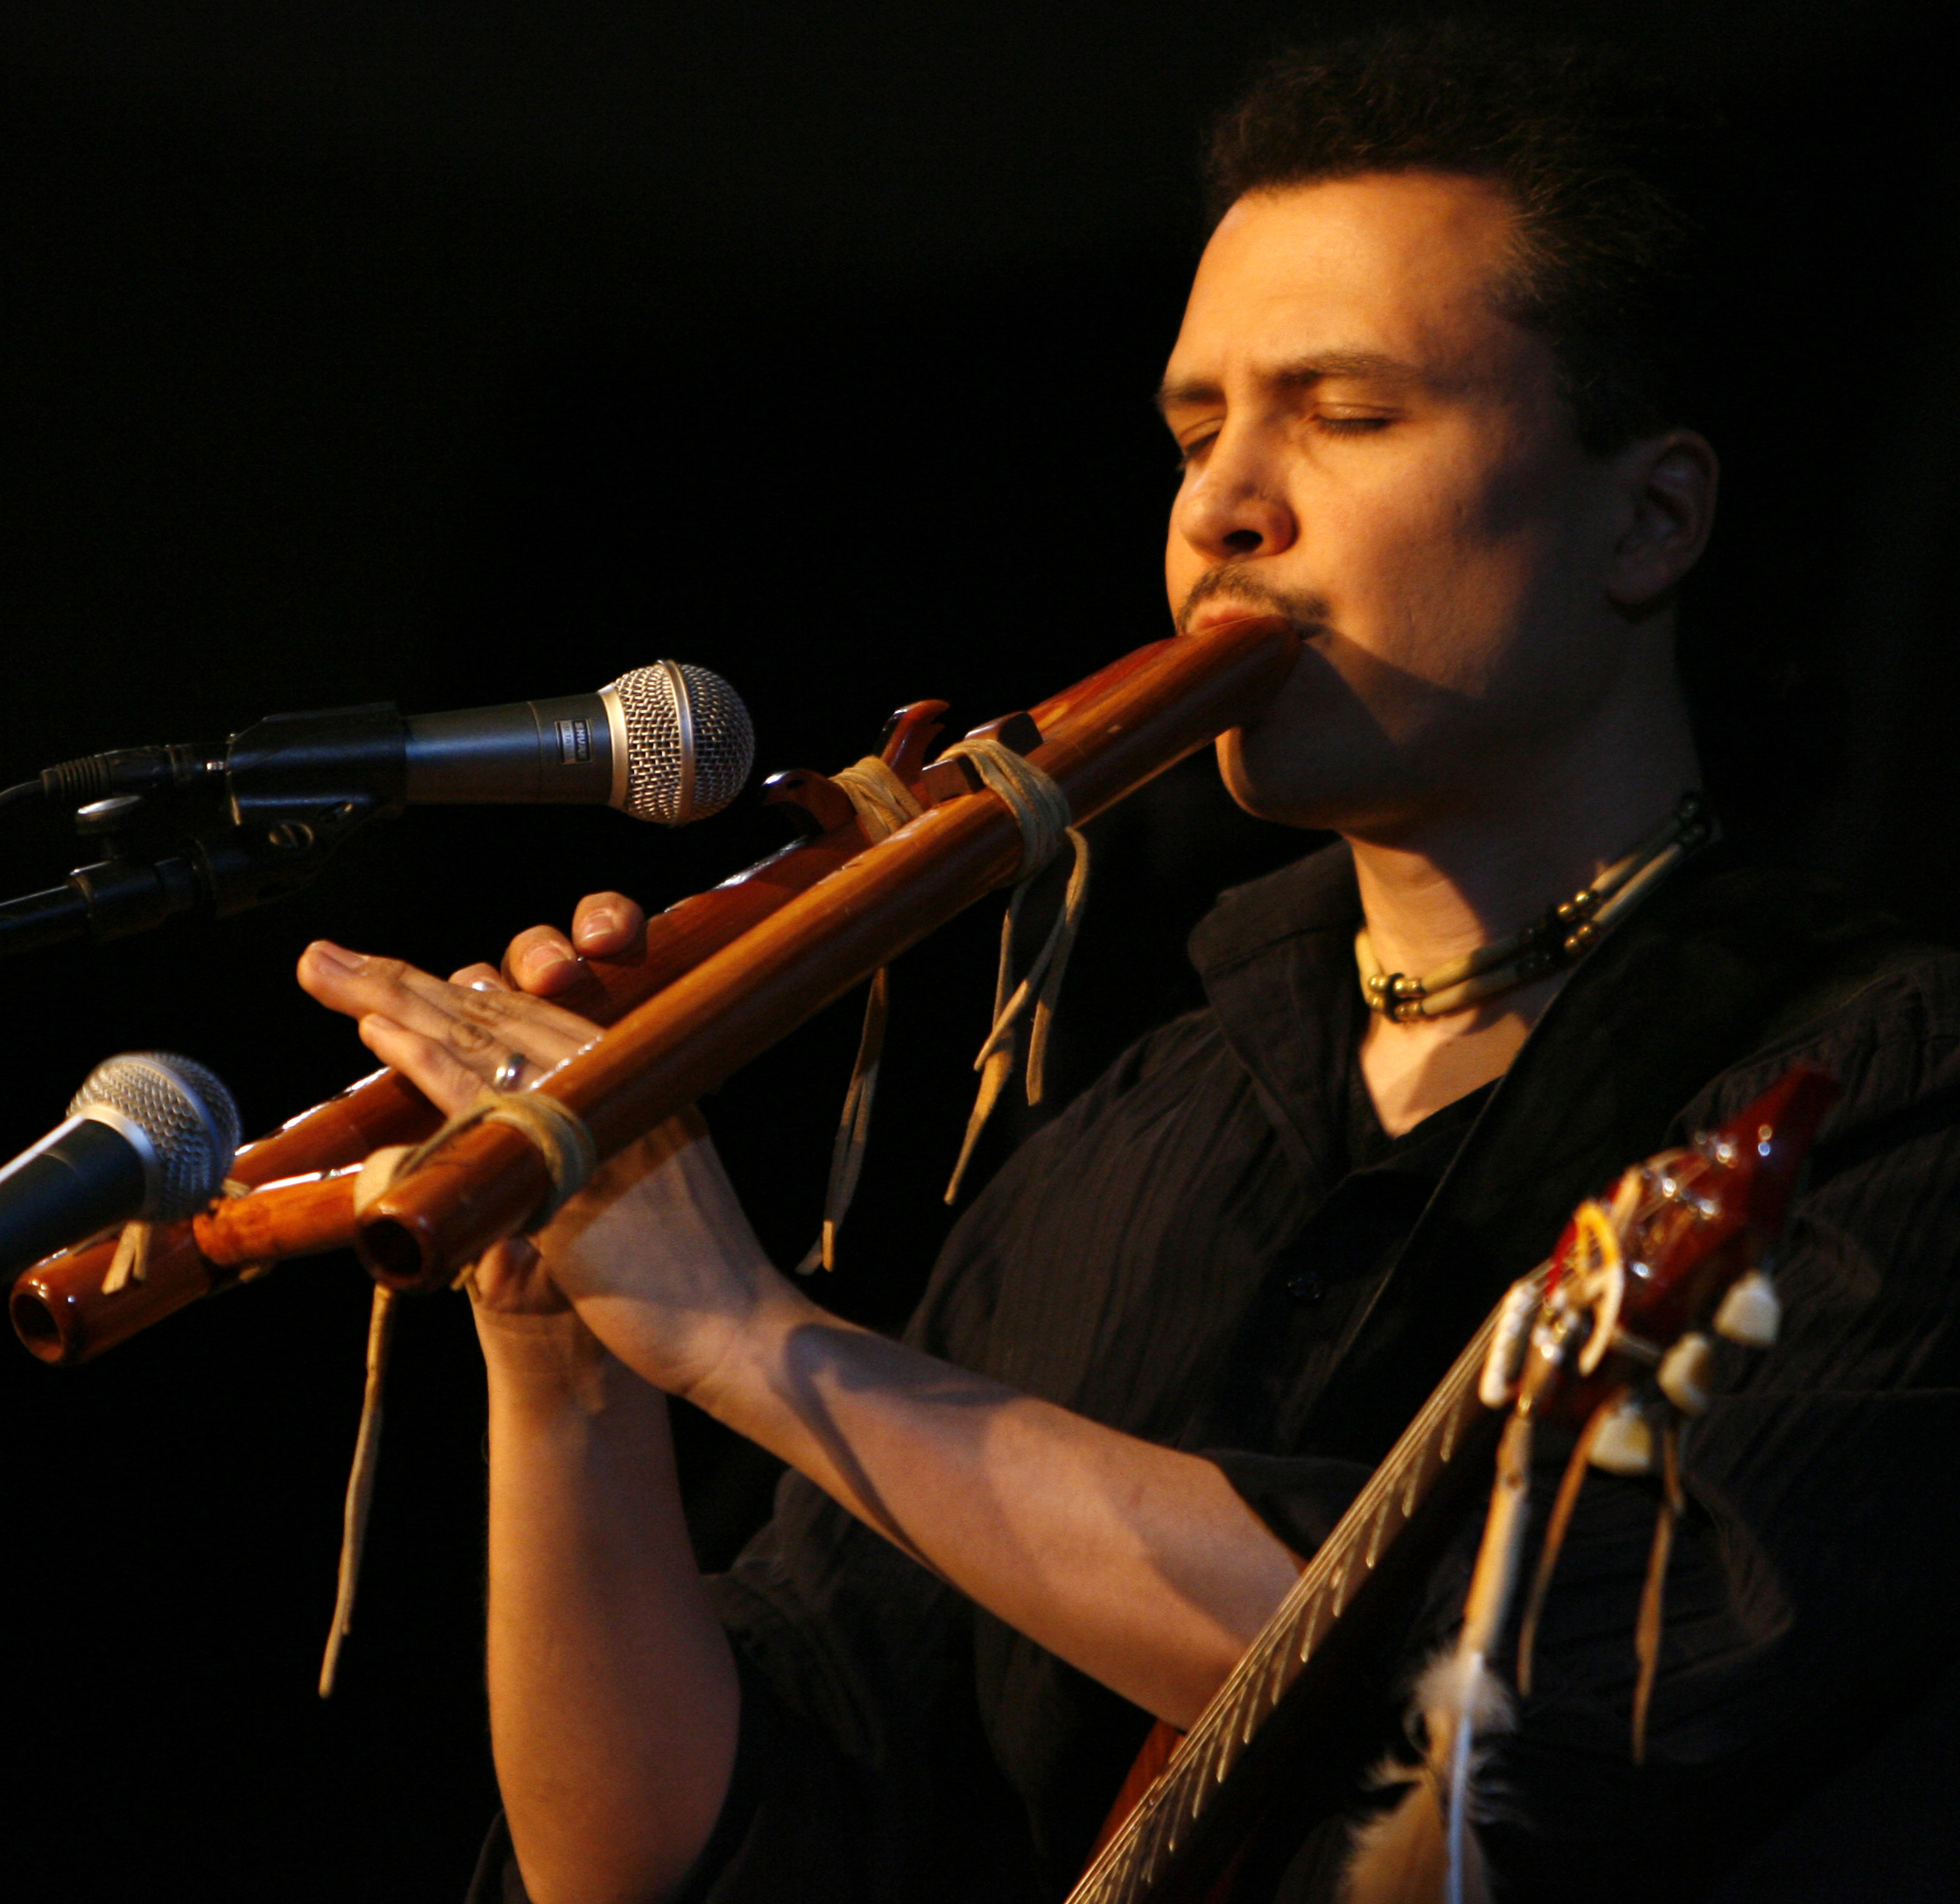 Wade Fernandez, Sr. of Keshena is a member of the Menominee Nation. He is an internationally recognized musician who taught the Native flute to apprentices at the Menominee Tribal School.